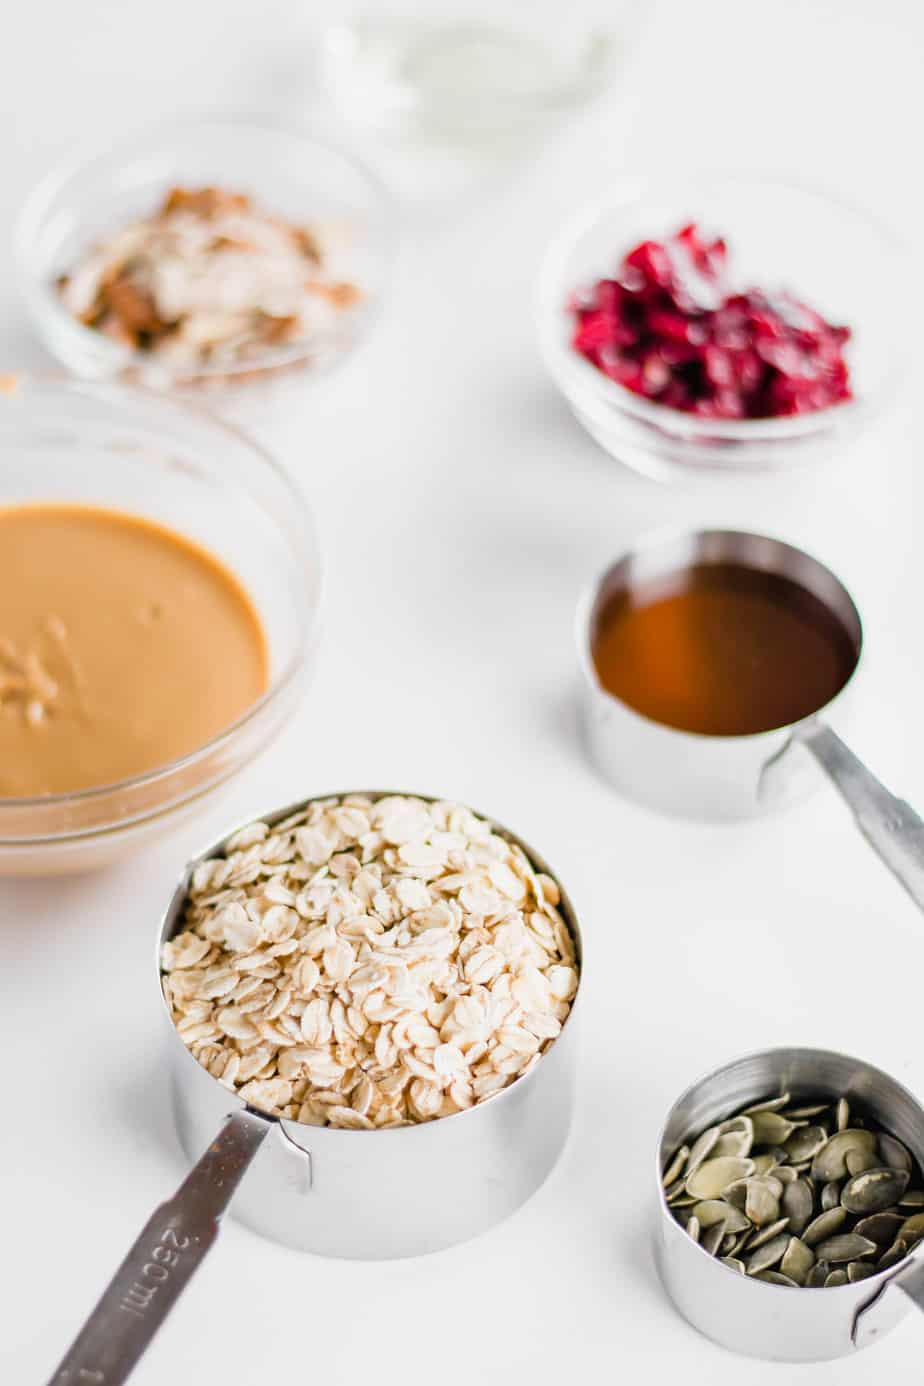 TheseCranberry Nut Energy Balls are the perfect vegan, gluten-free snack. They require one bowl to make, are packed with protein and will satisfy that sweet tooth.